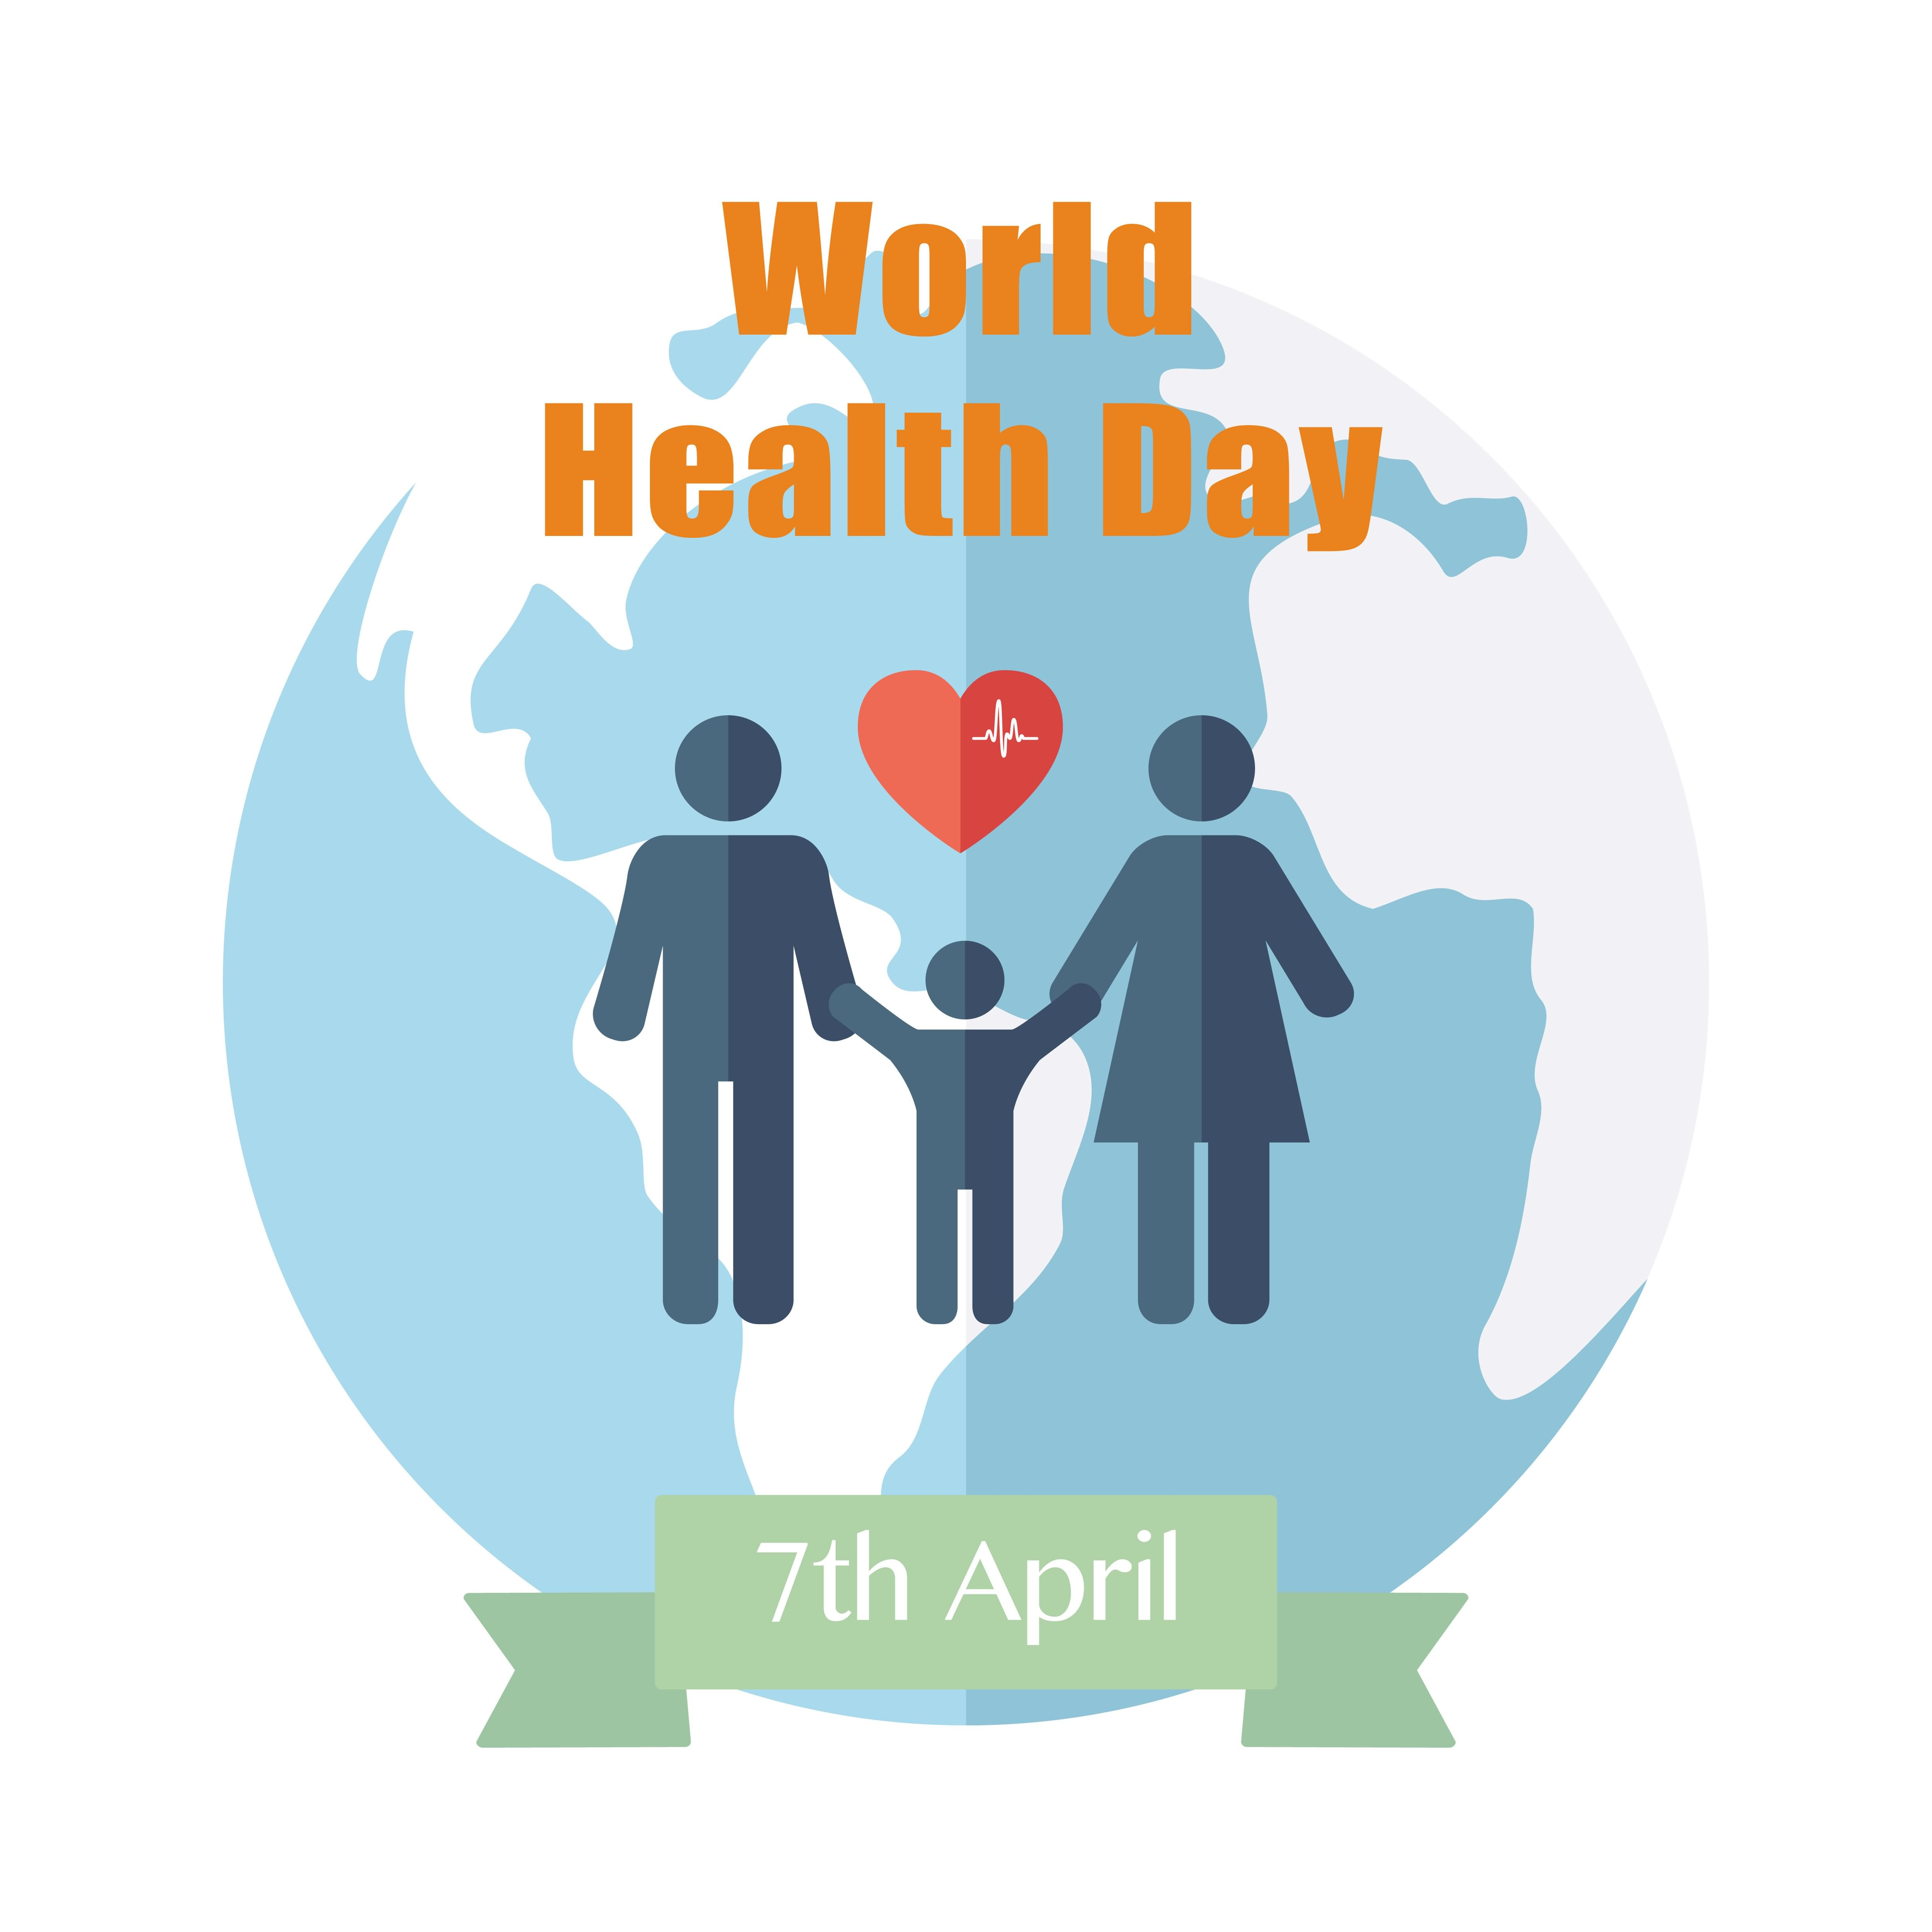 world health day 7th april 2016